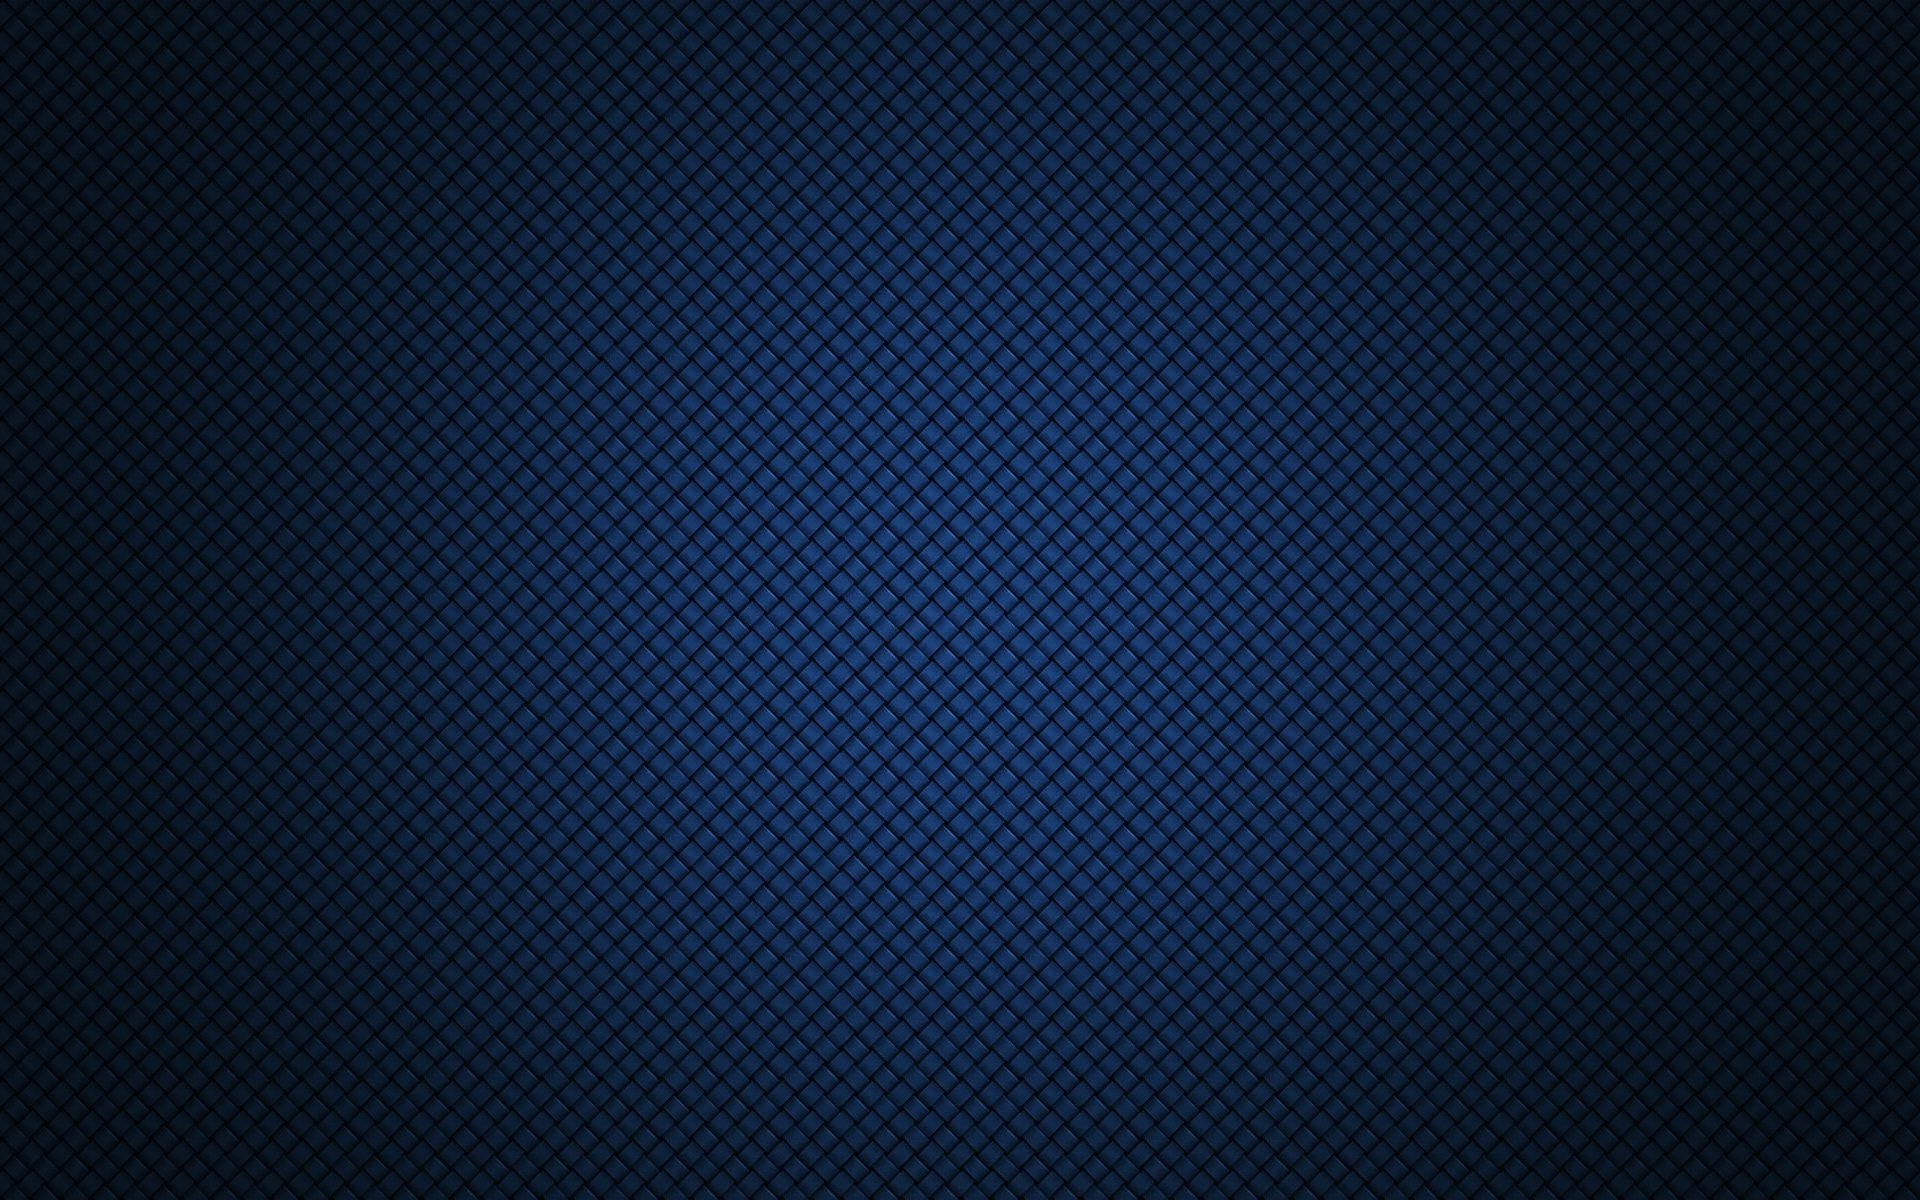 Plain black wallpapers hd 74 images - Dark blue wallpaper hd for android ...